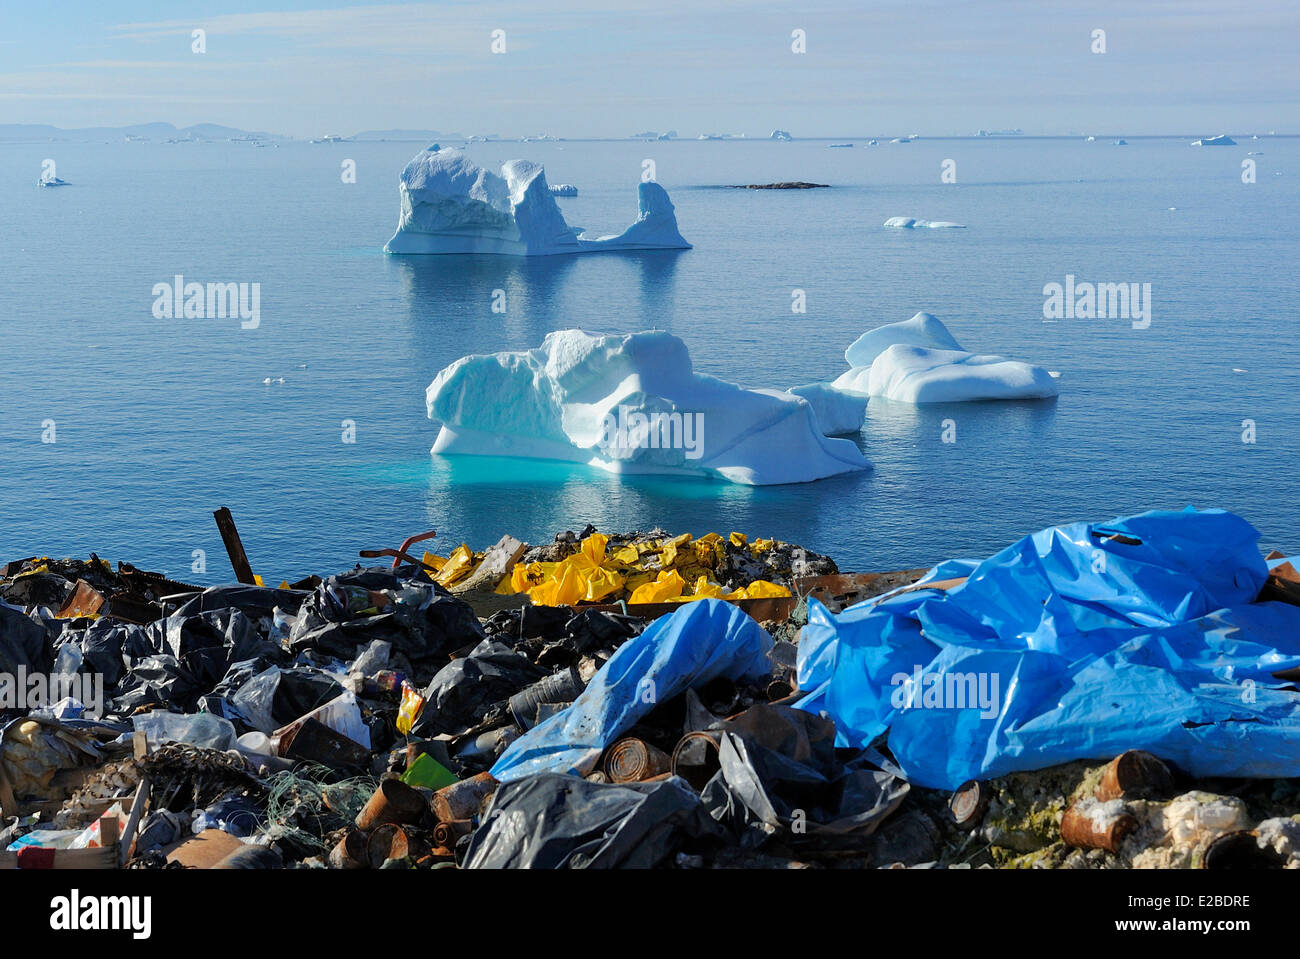 Greenland, Baffin Bay, Nuussuaq, Garbage dump and icebergs - Stock Image